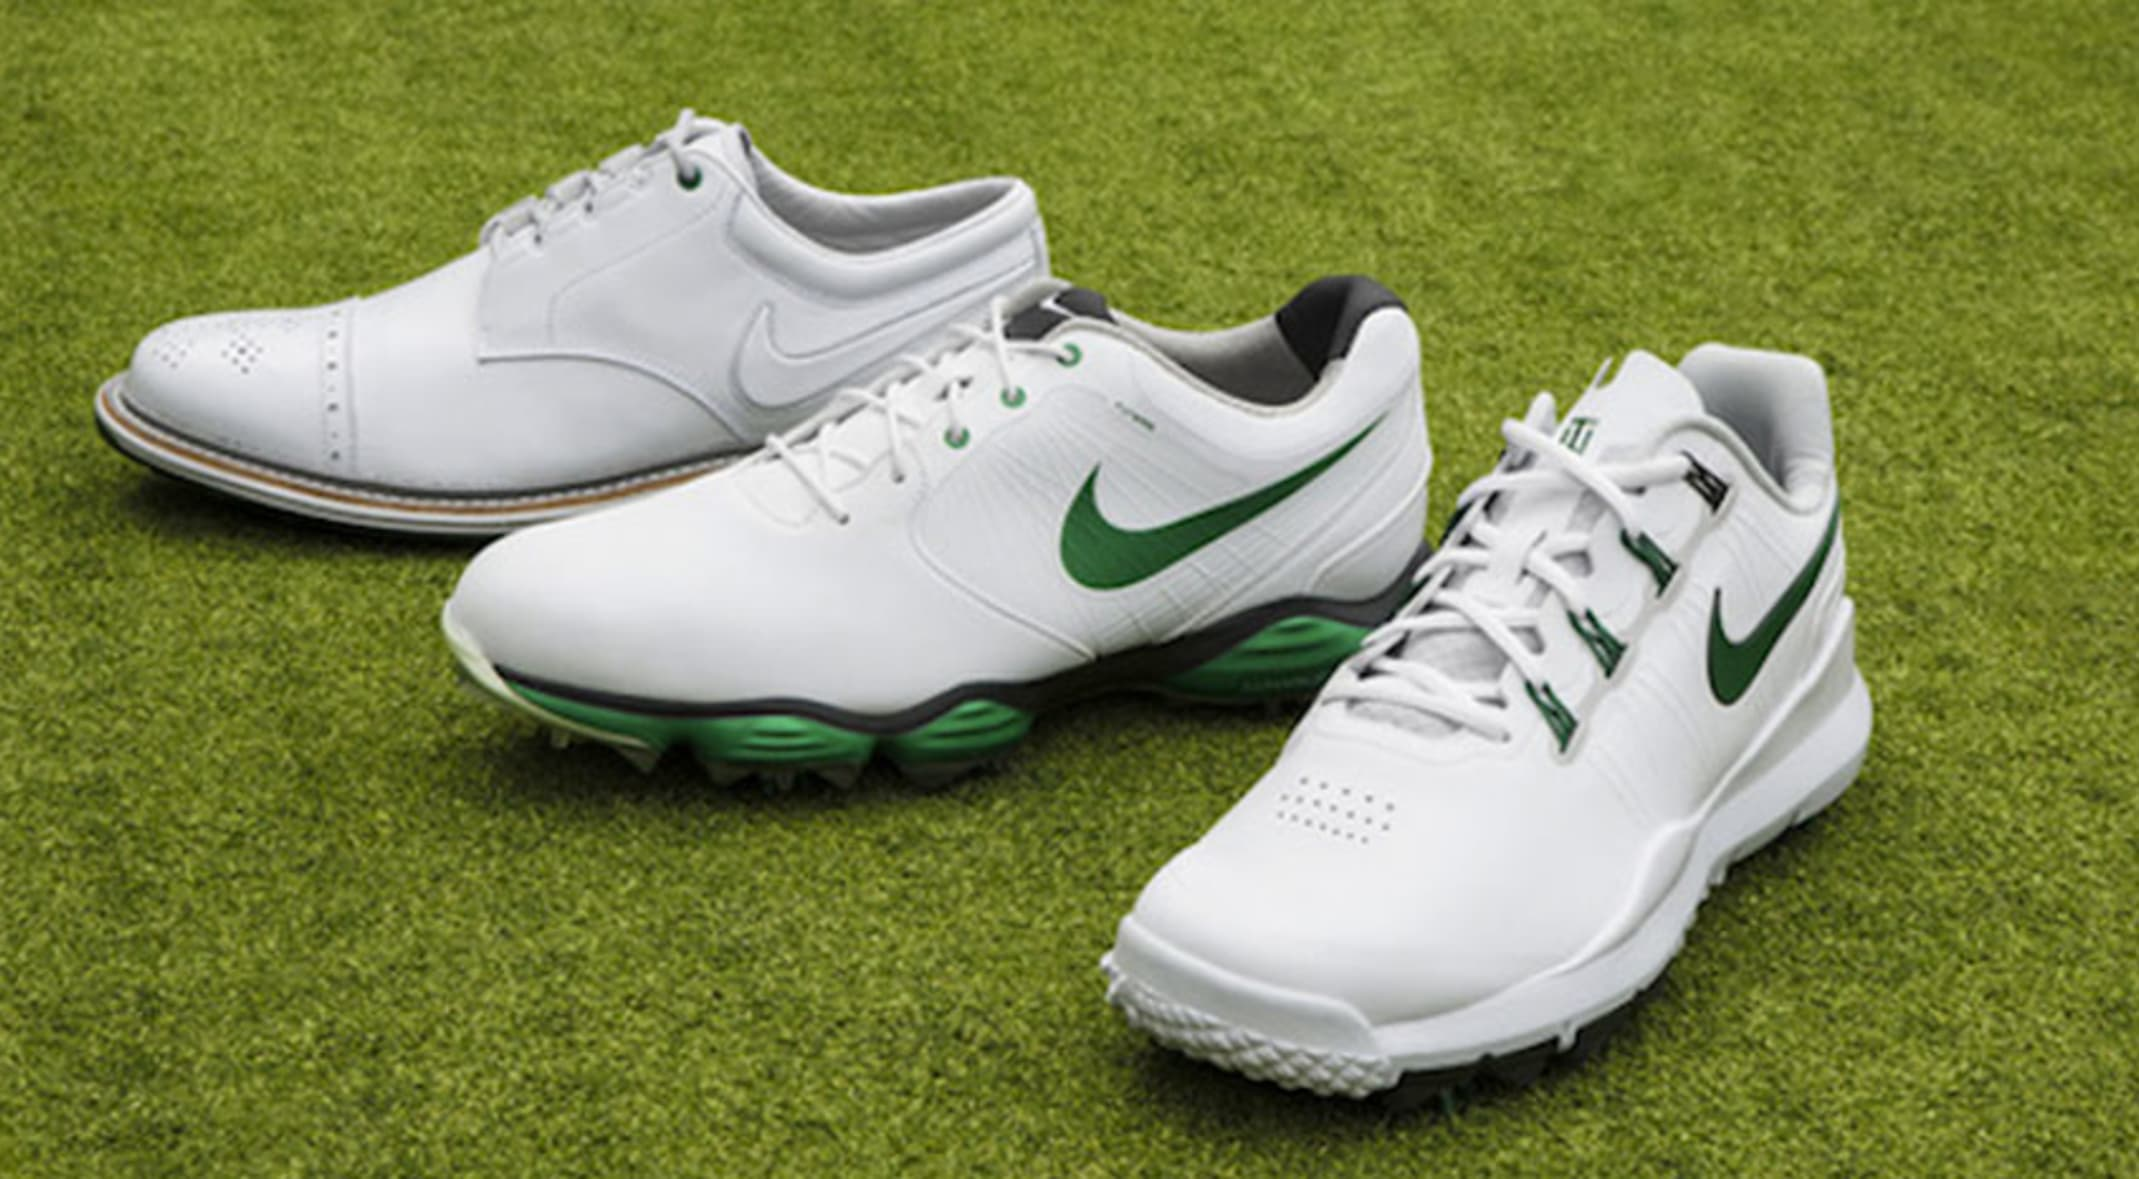 7528ad46f447 Nike Golf will introduce three limited edition footwear styles